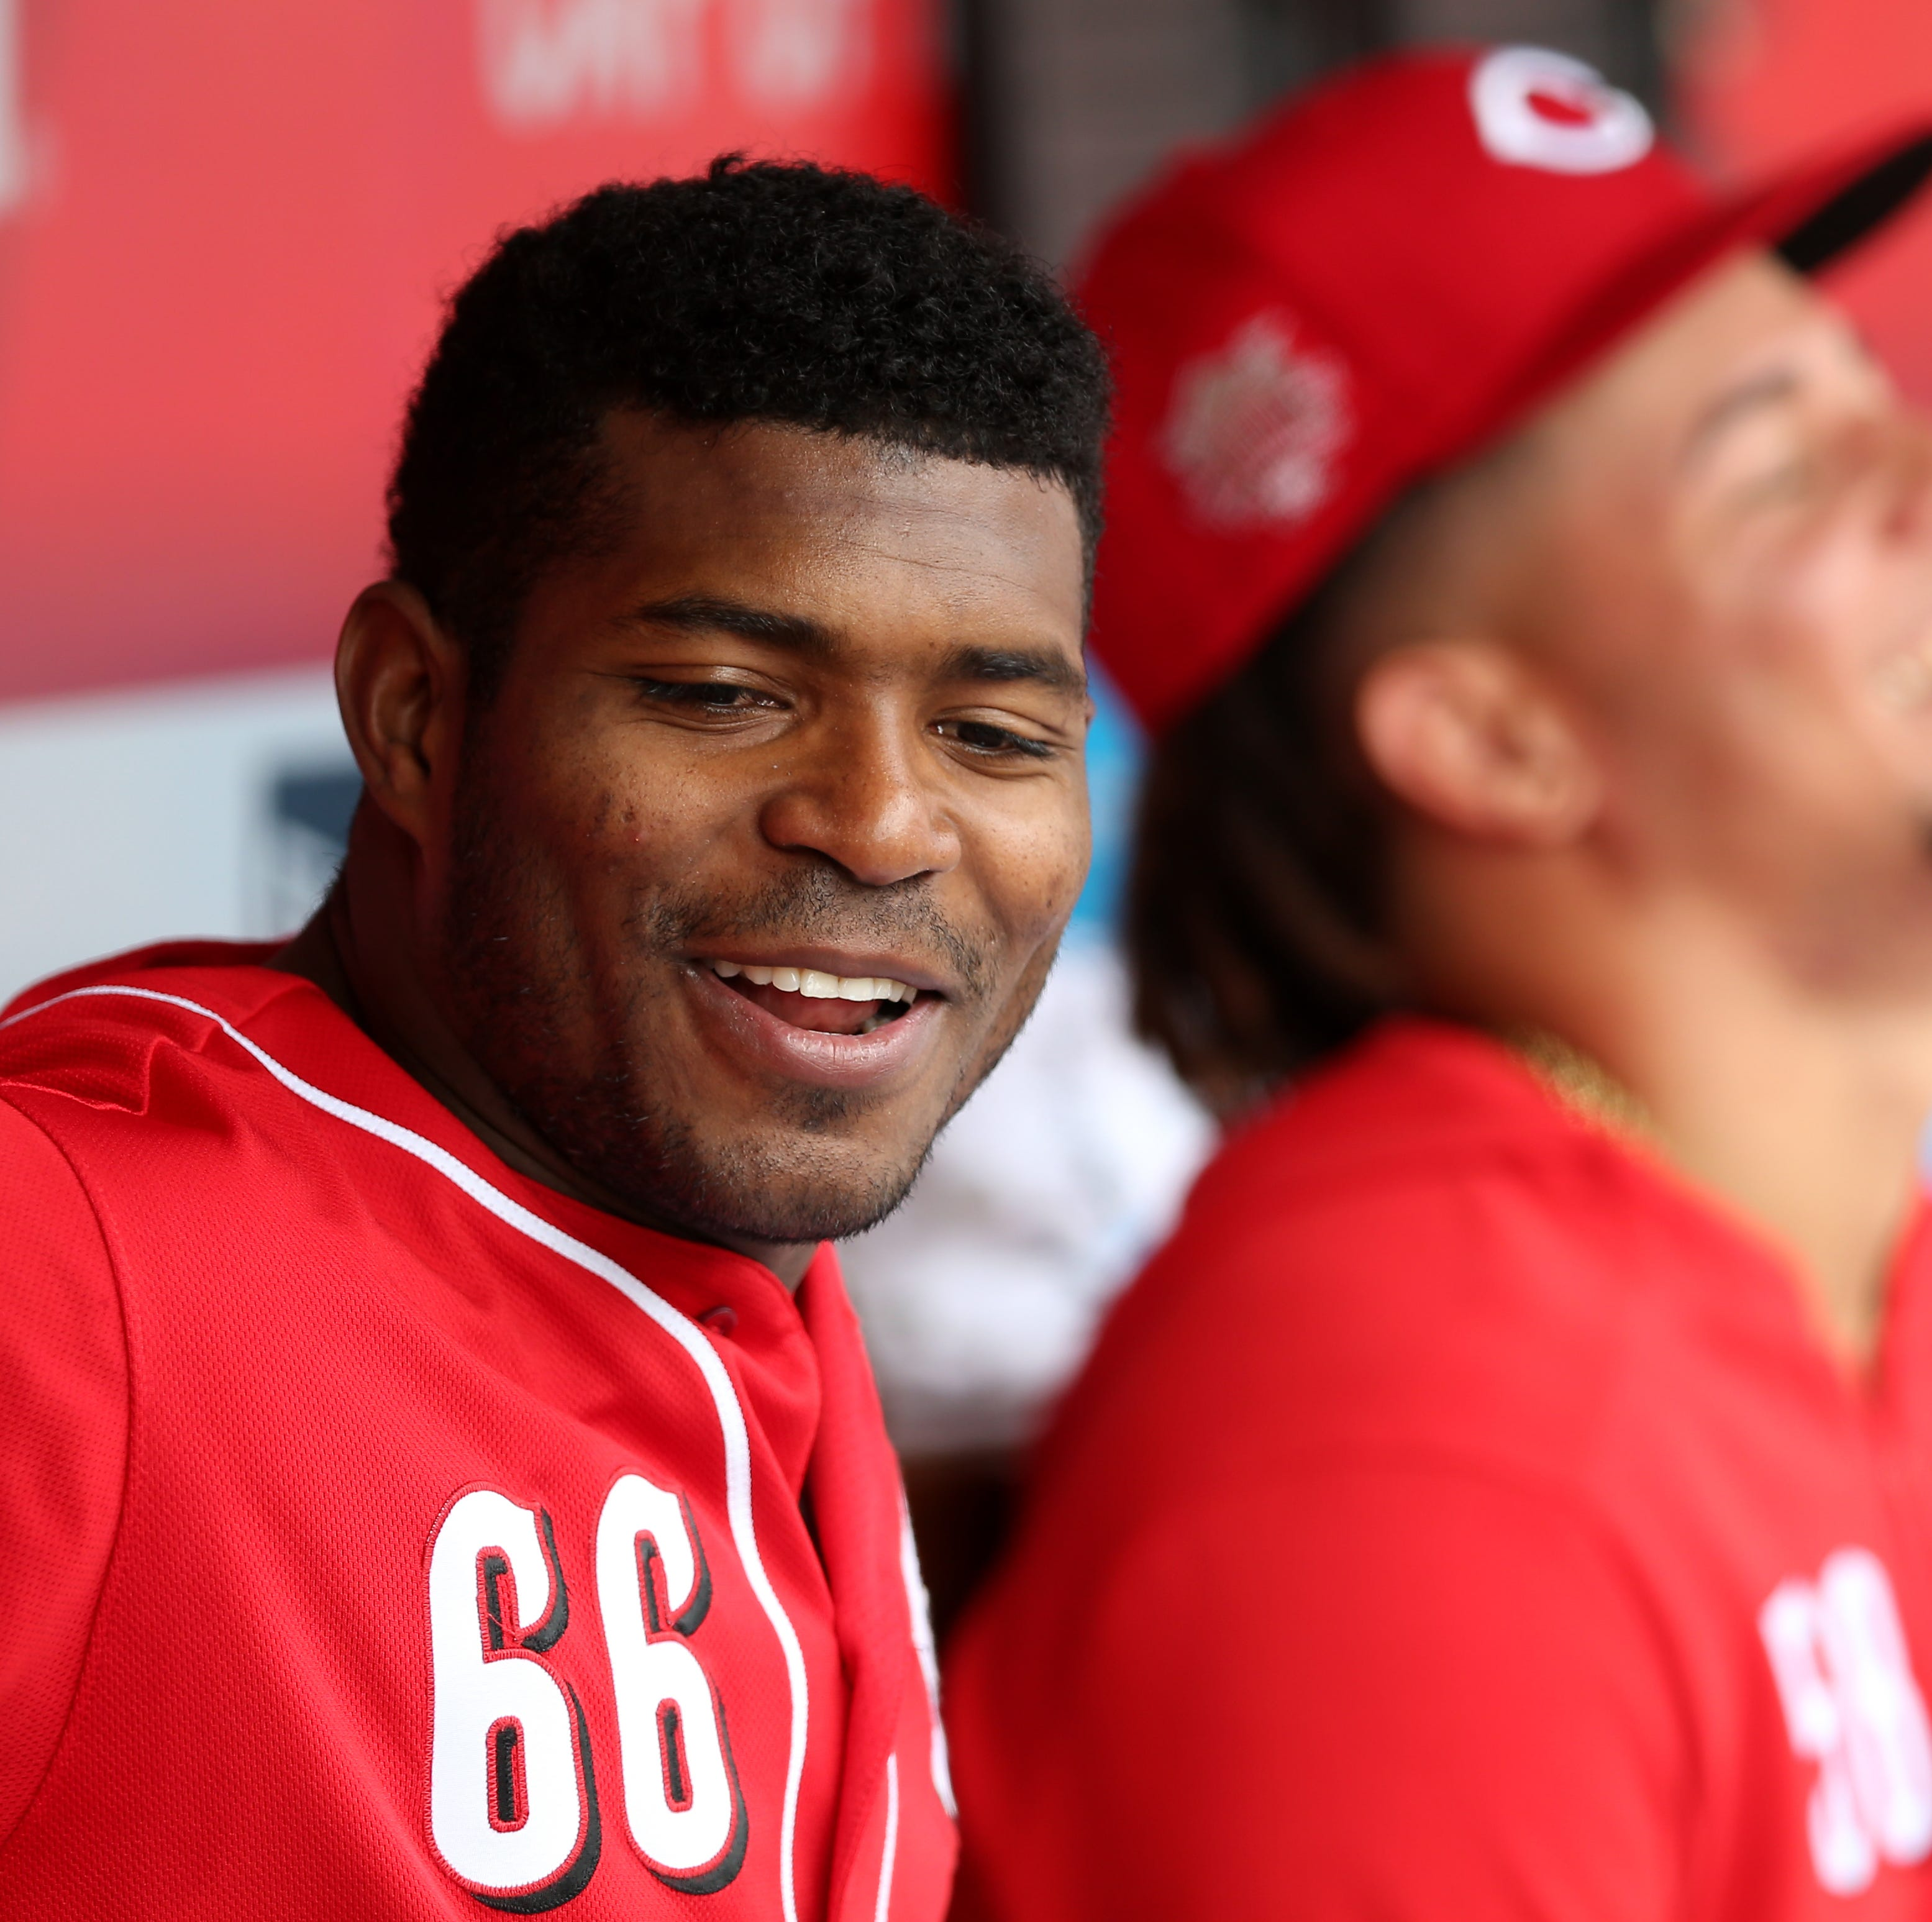 'I'm from Mexico': Cincinnati Reds' Yasiel Puig looks forward to his first games in Mexico